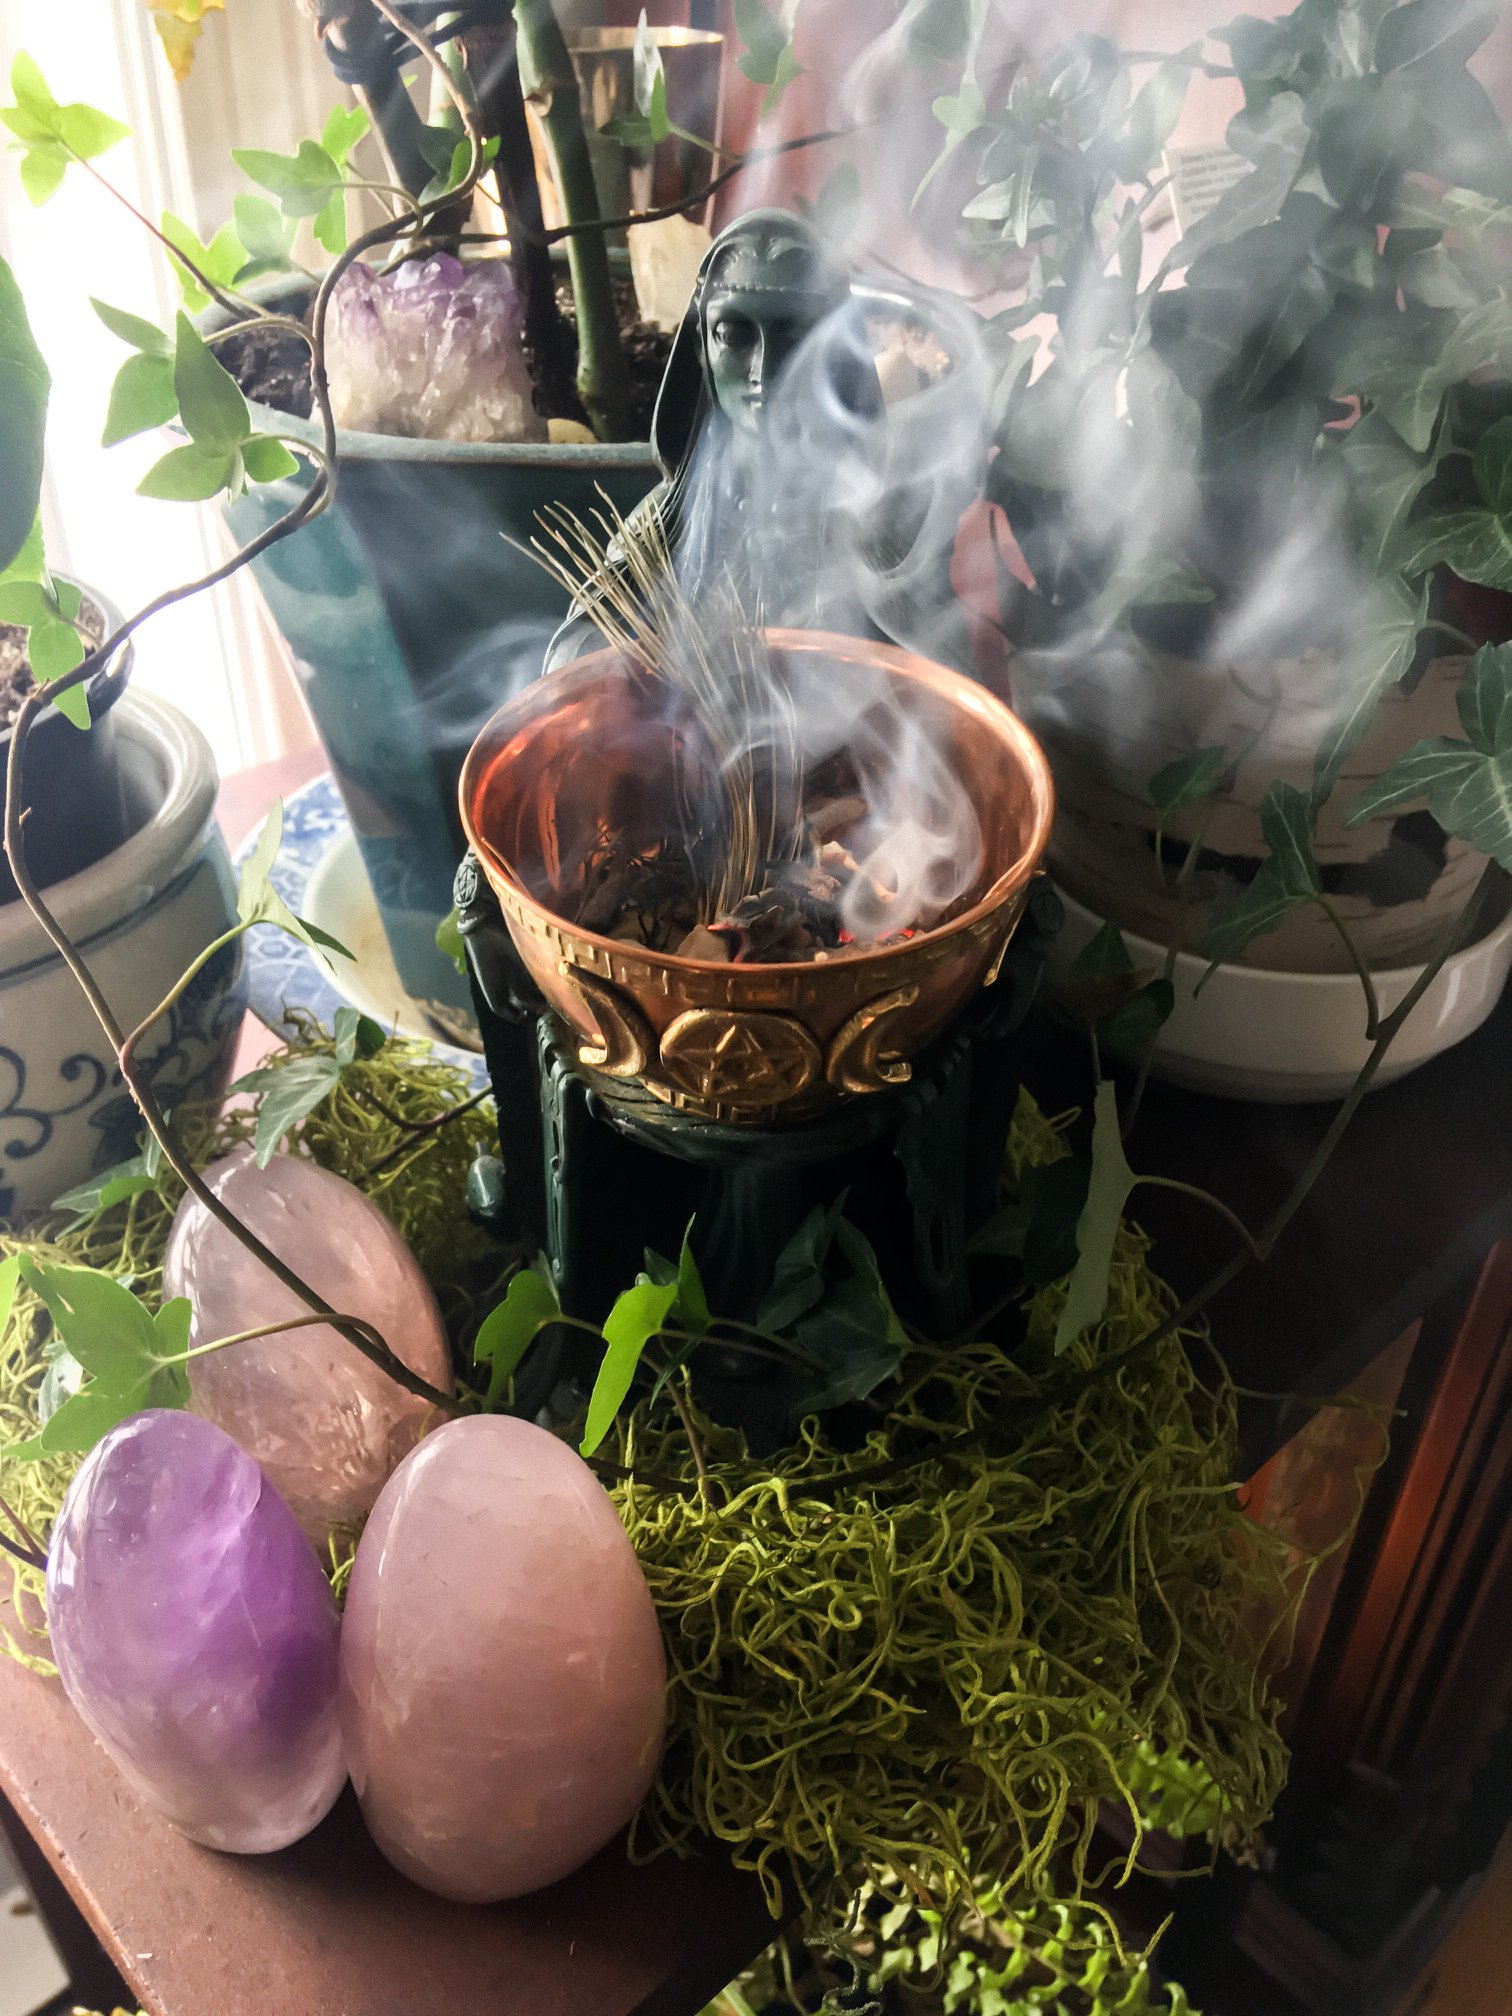 crystal eggs and smudge pot